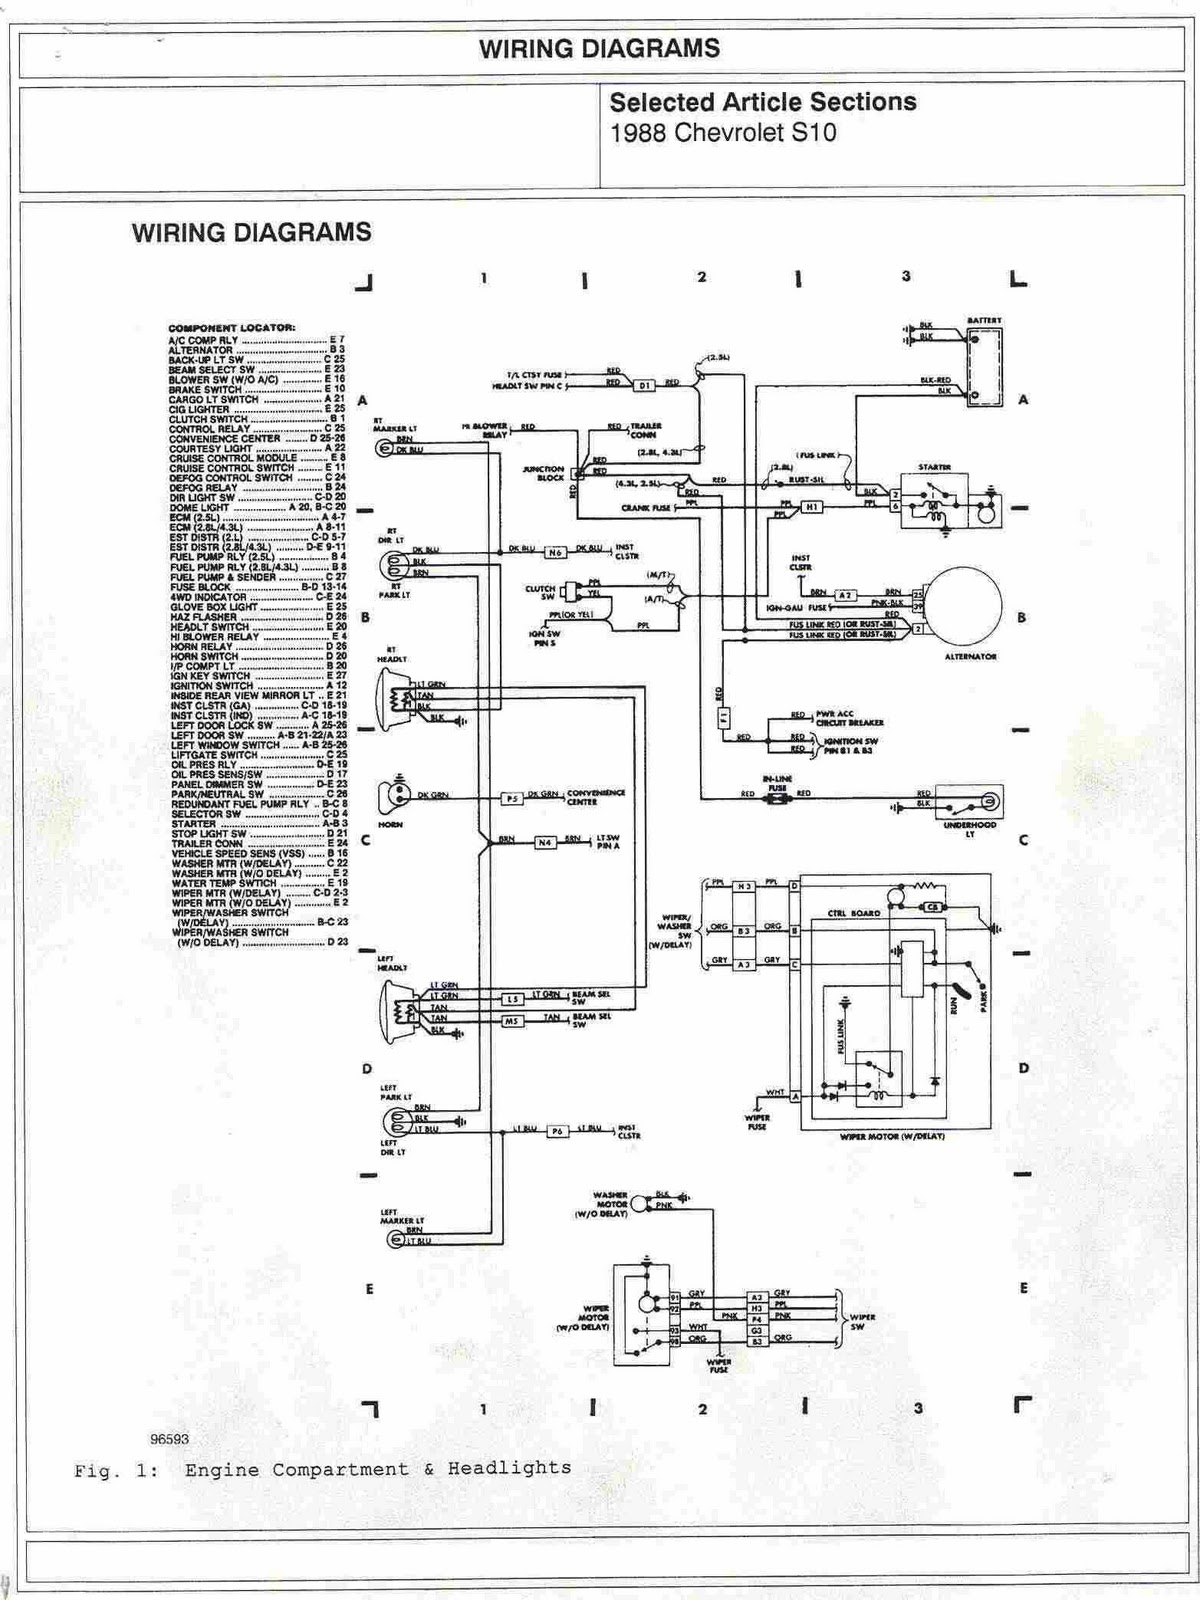 1996 S10 Headlight Wiring Diagram: 1990 chevy s10 blazer wiring  diagramrh:svlc.us